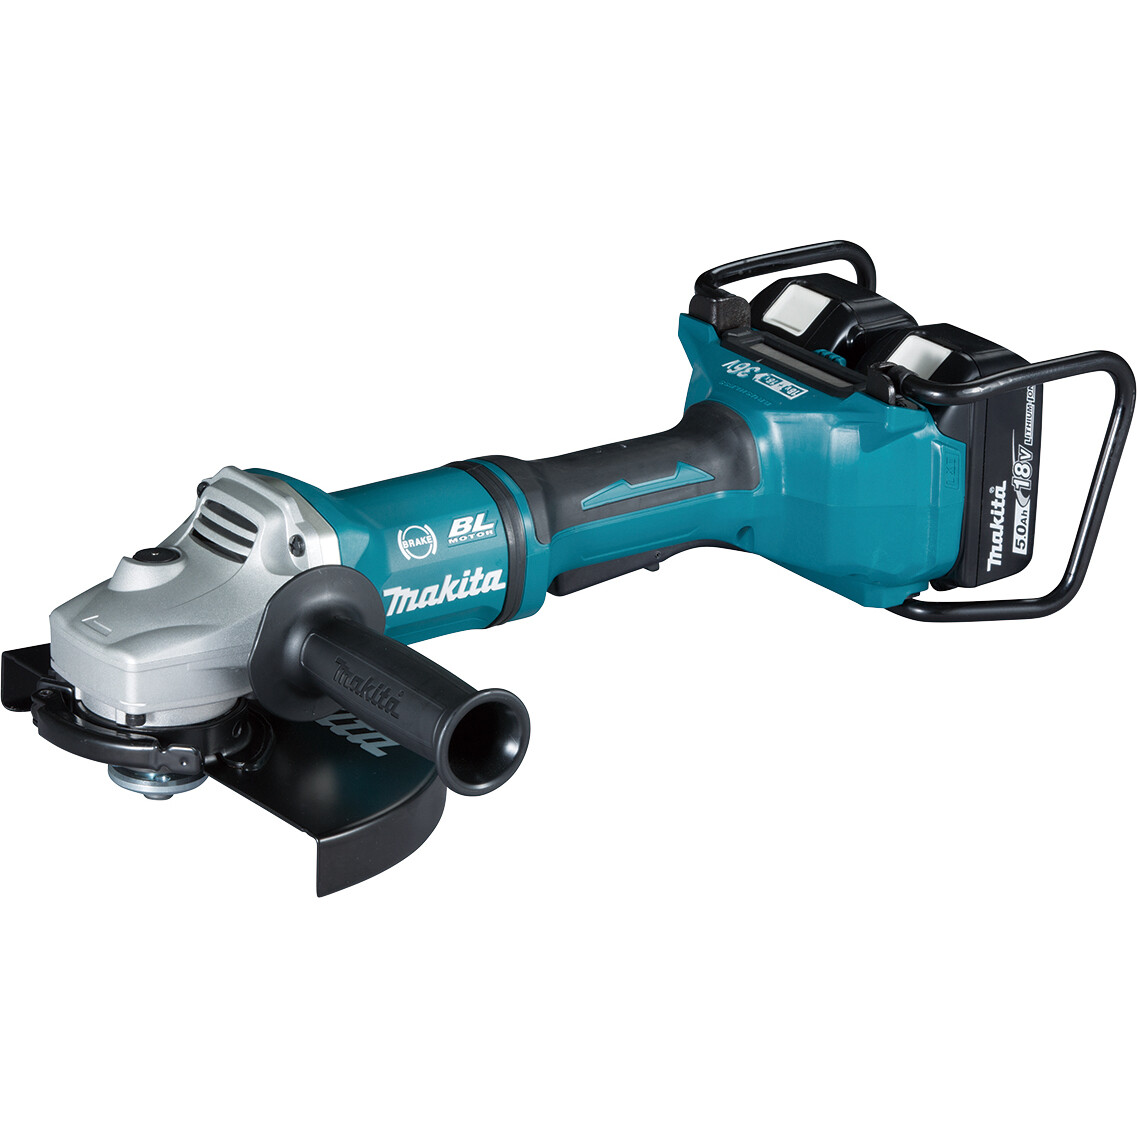 Makita Dga900pt2 Twin 18v 230mm 9 Angle Grinder With 2 Batteries Cordless Metabo W18 Ltx 125